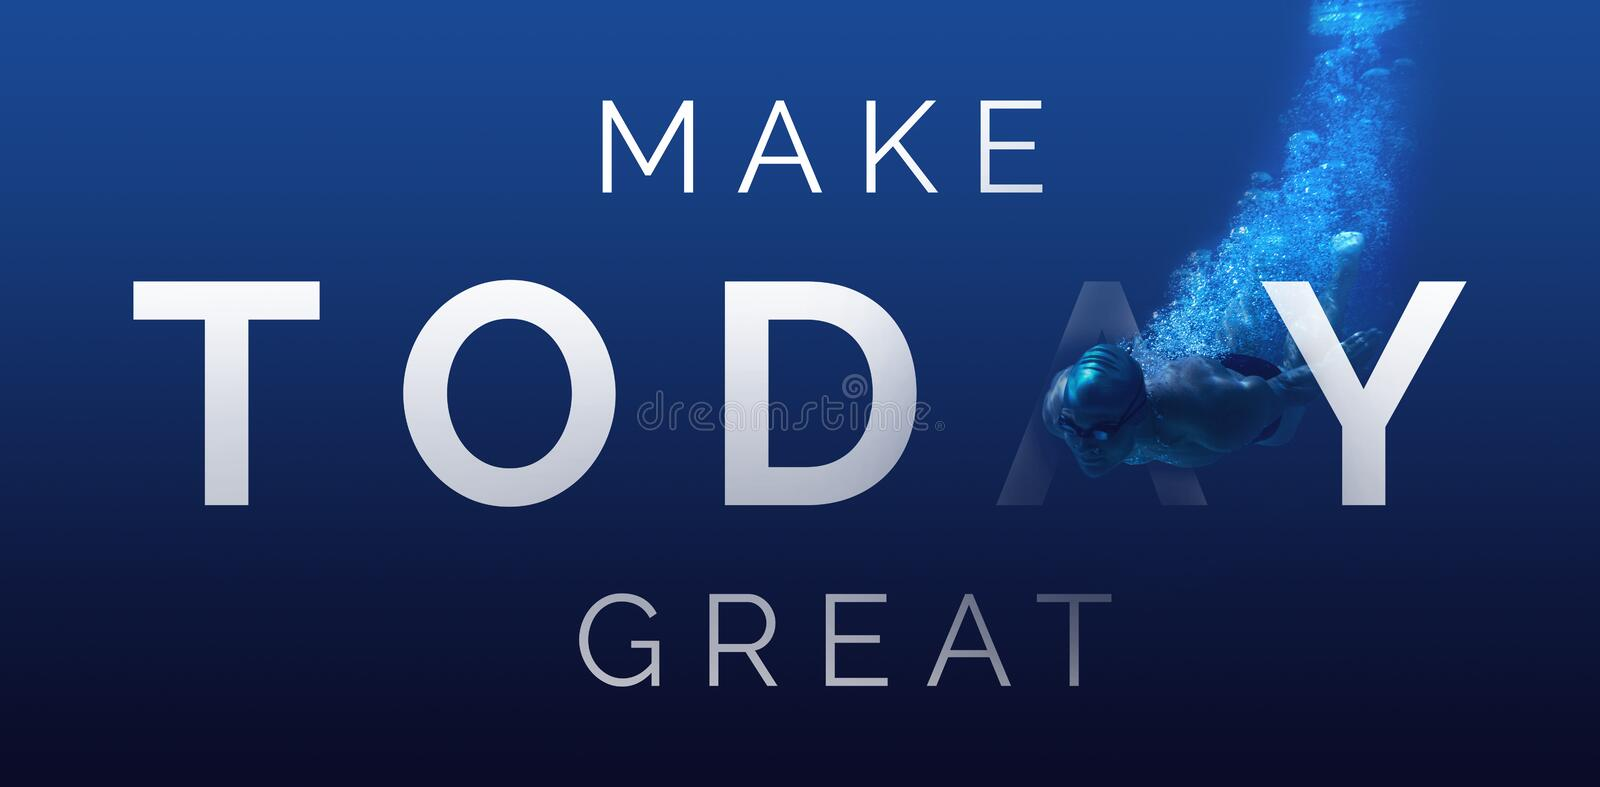 Composite image of digitally generated image of make today great text. Digitally generated image of Make Today Great text against man swimming in blue water stock illustration